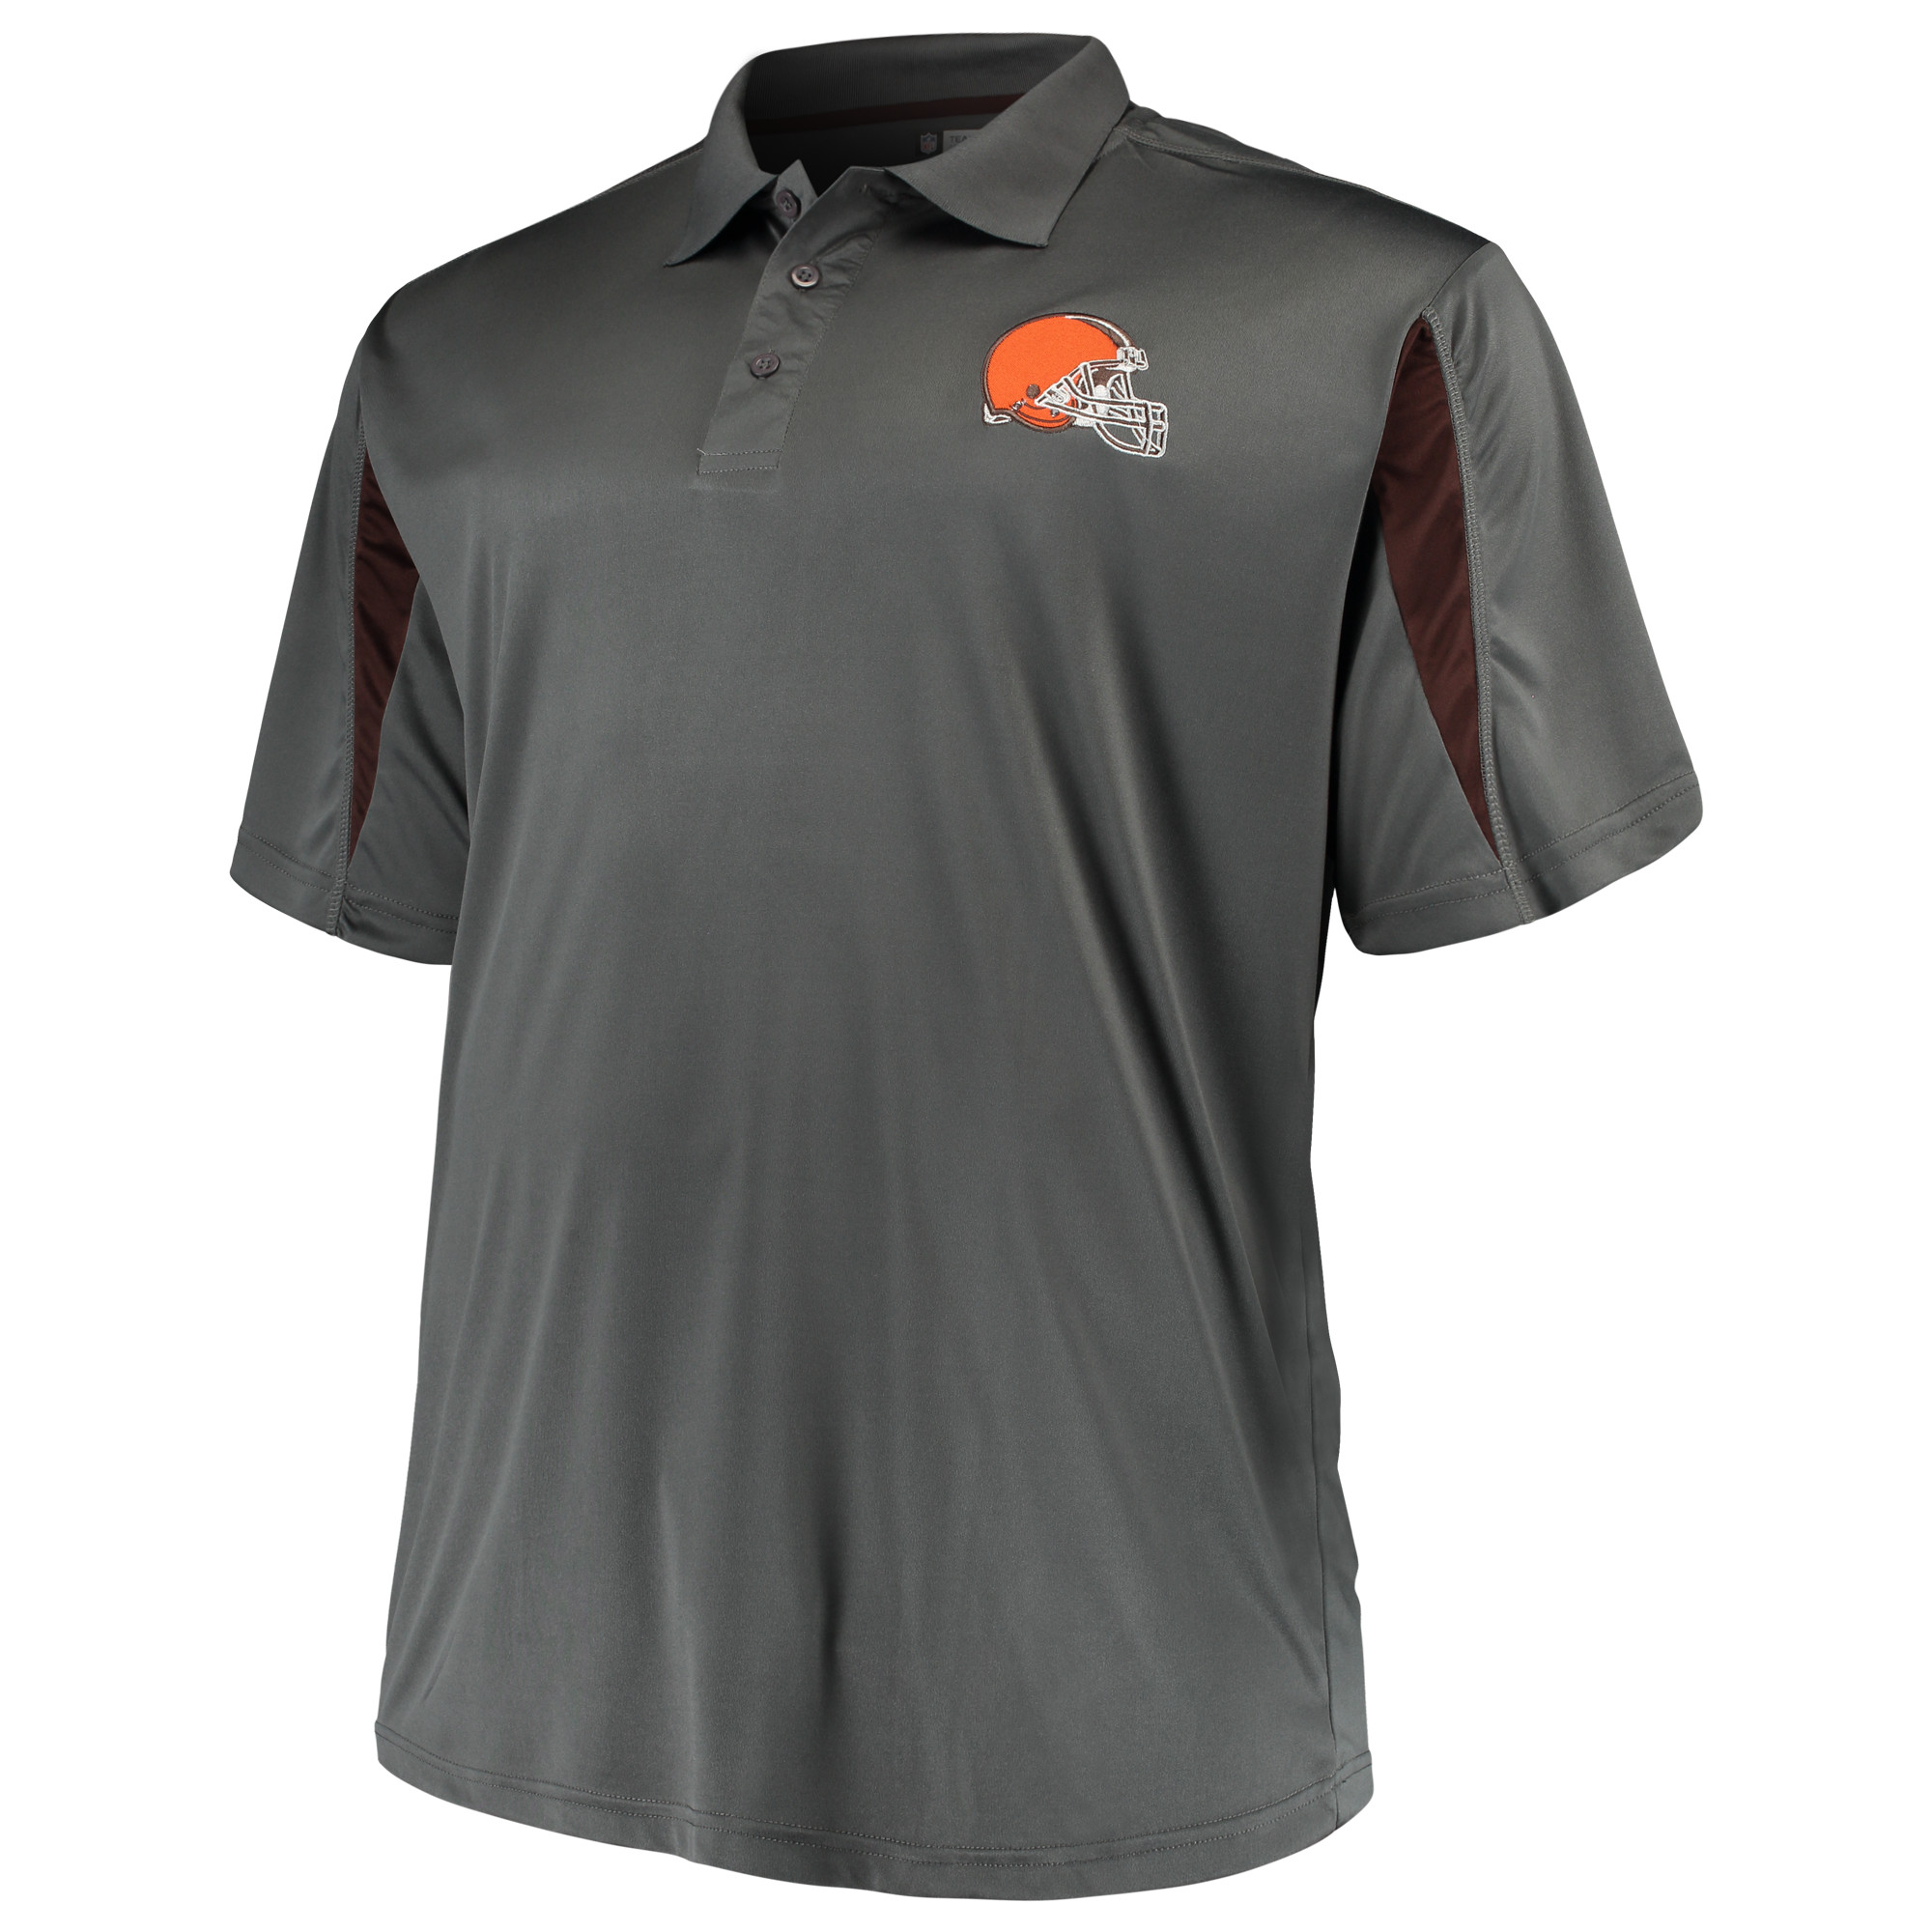 Men's Majestic Charcoal Cleveland Browns Big & Tall Pieced Polo